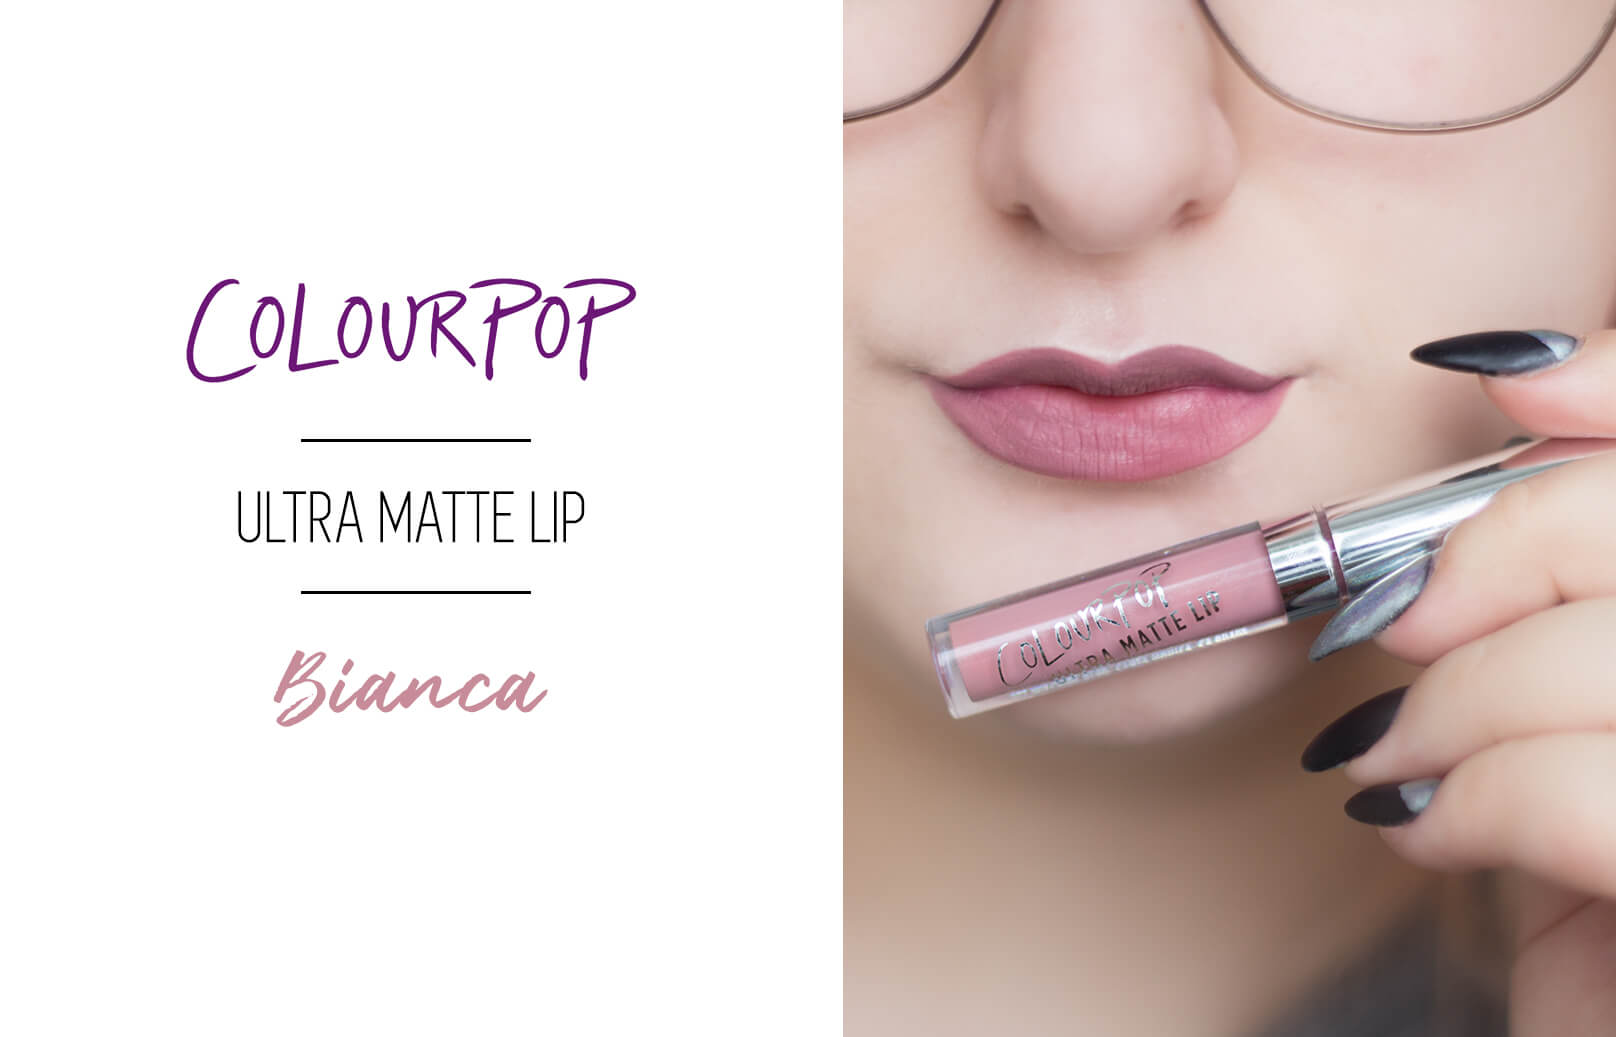 Colourpop Ultra Matte Lips • It's Vintage Set!